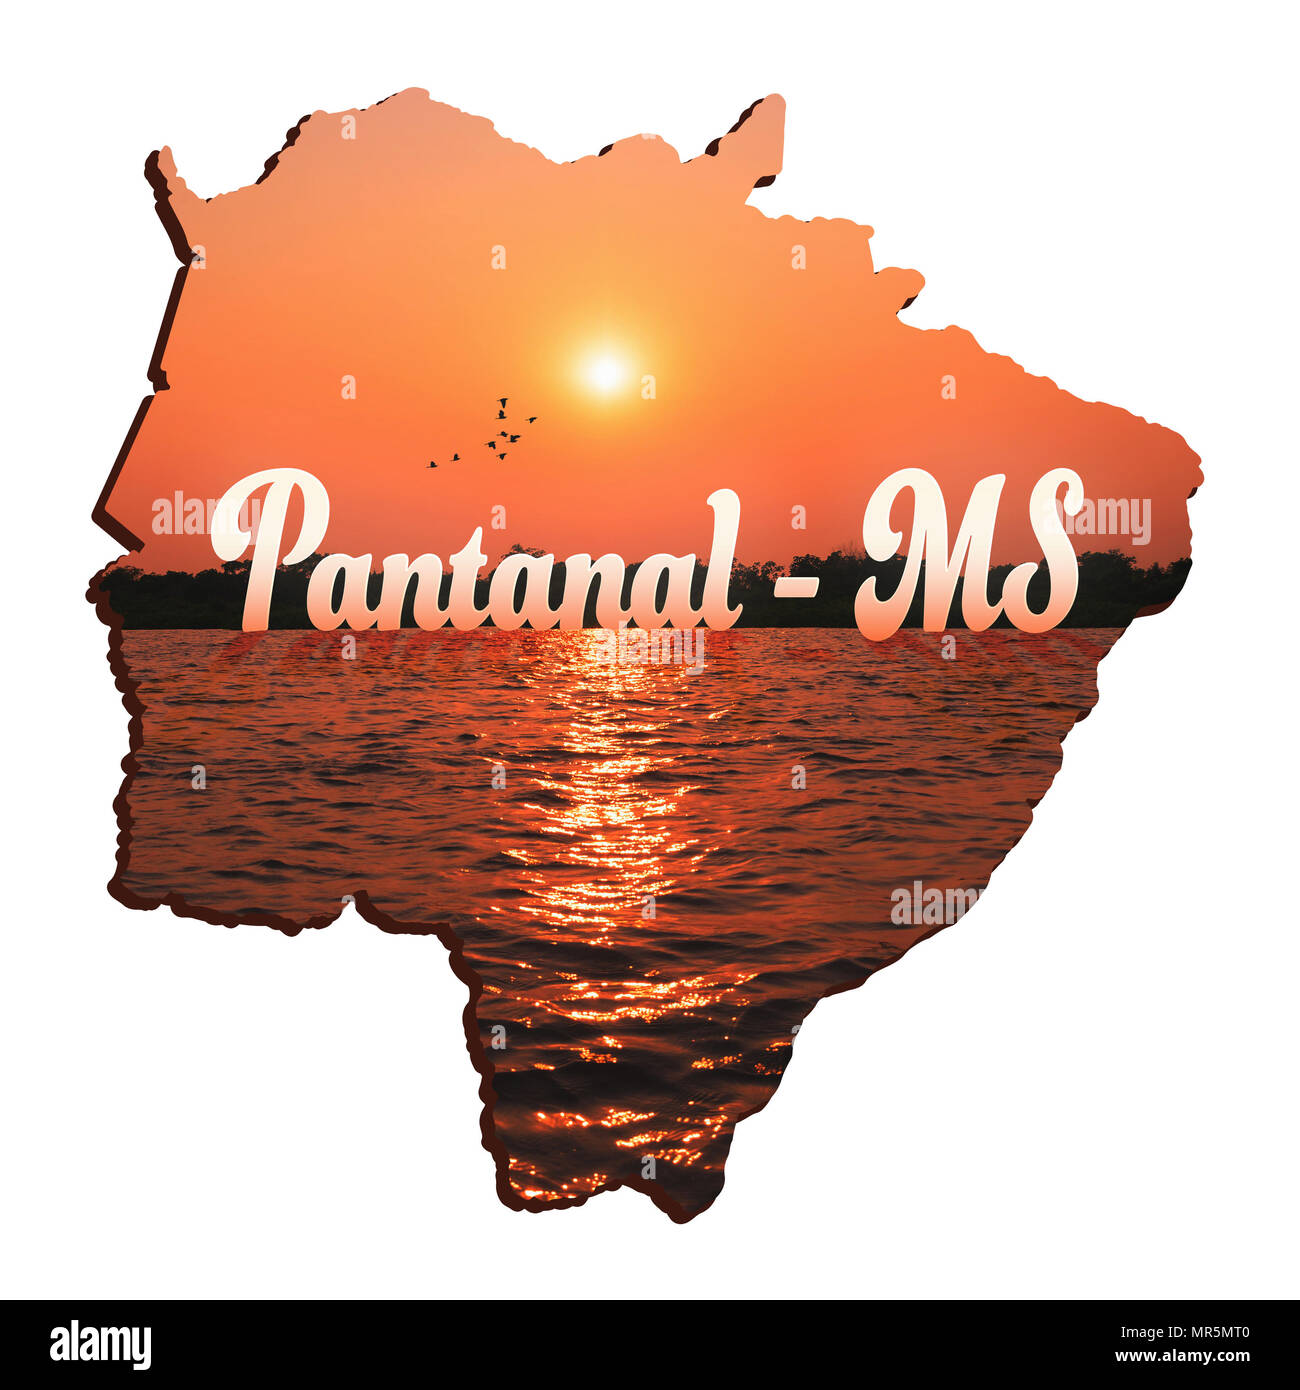 Map of Mato Grosso do Sul state, illustration concept of the Pantanal MS. Outlines of the MS state with the beautiful nature of the Pantanal Sul-Mato- Stock Photo